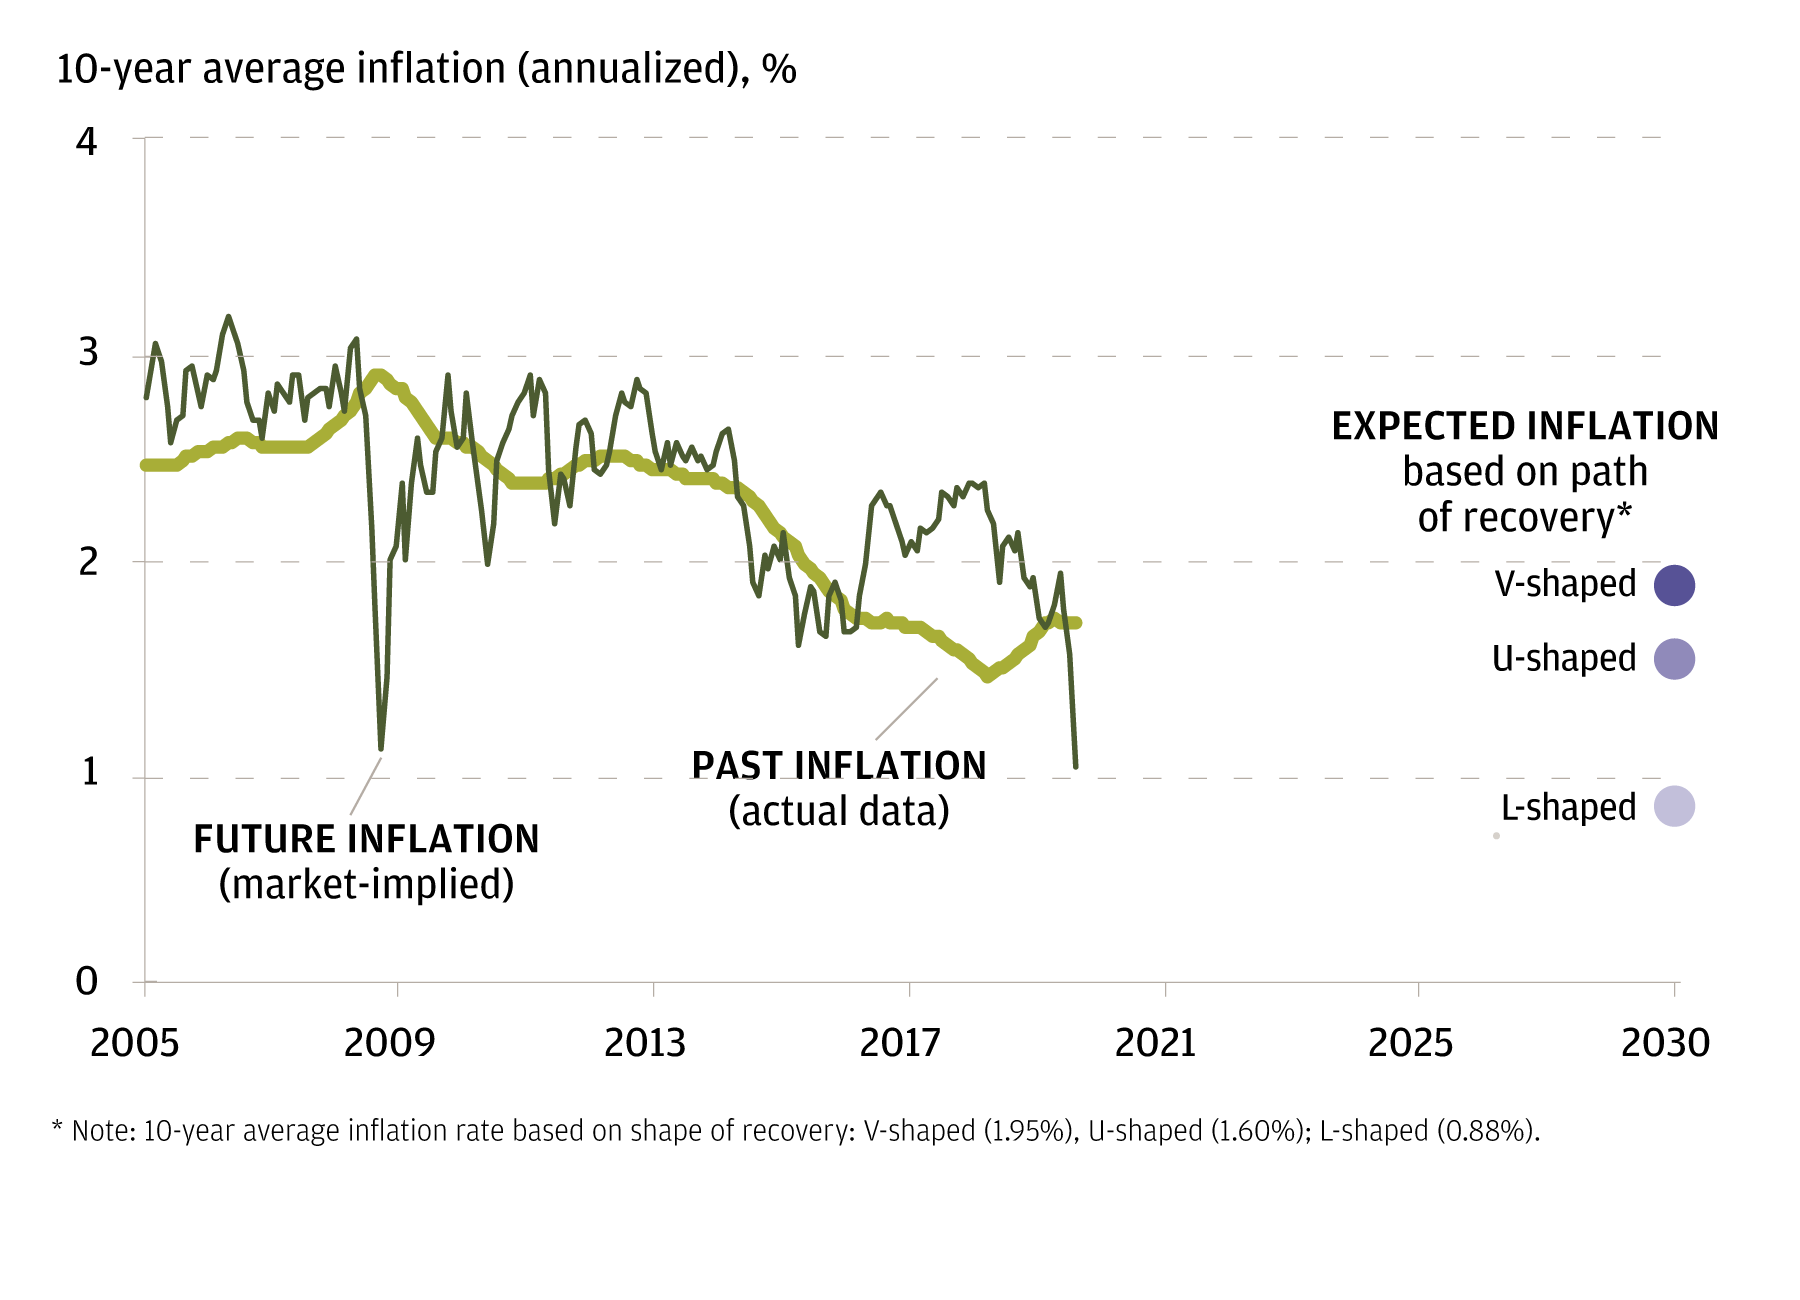 The line chart shows how the market is pricing in a significant drop in inflation, making it relatively inexpensive to hedge inflation-vulnerable portfolios against potential future rises in inflation.